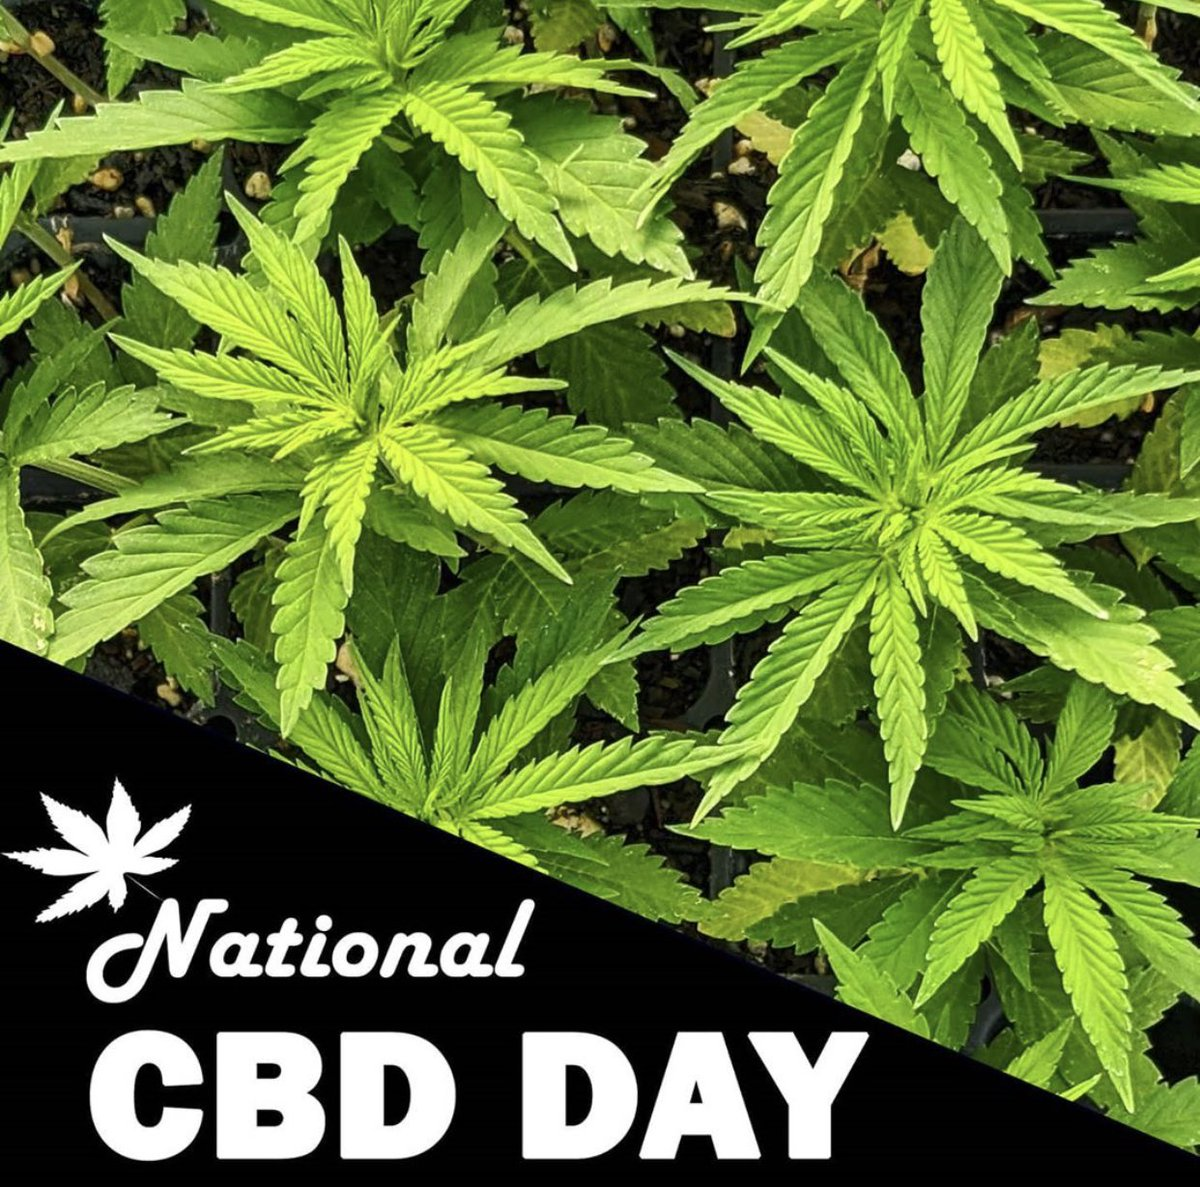 Happy national CBD day#cbd #CBDcommunity #conroe #conroetx #thewoodlands #SaturdayVibespic.twitter.com/ph2n9KQWhO